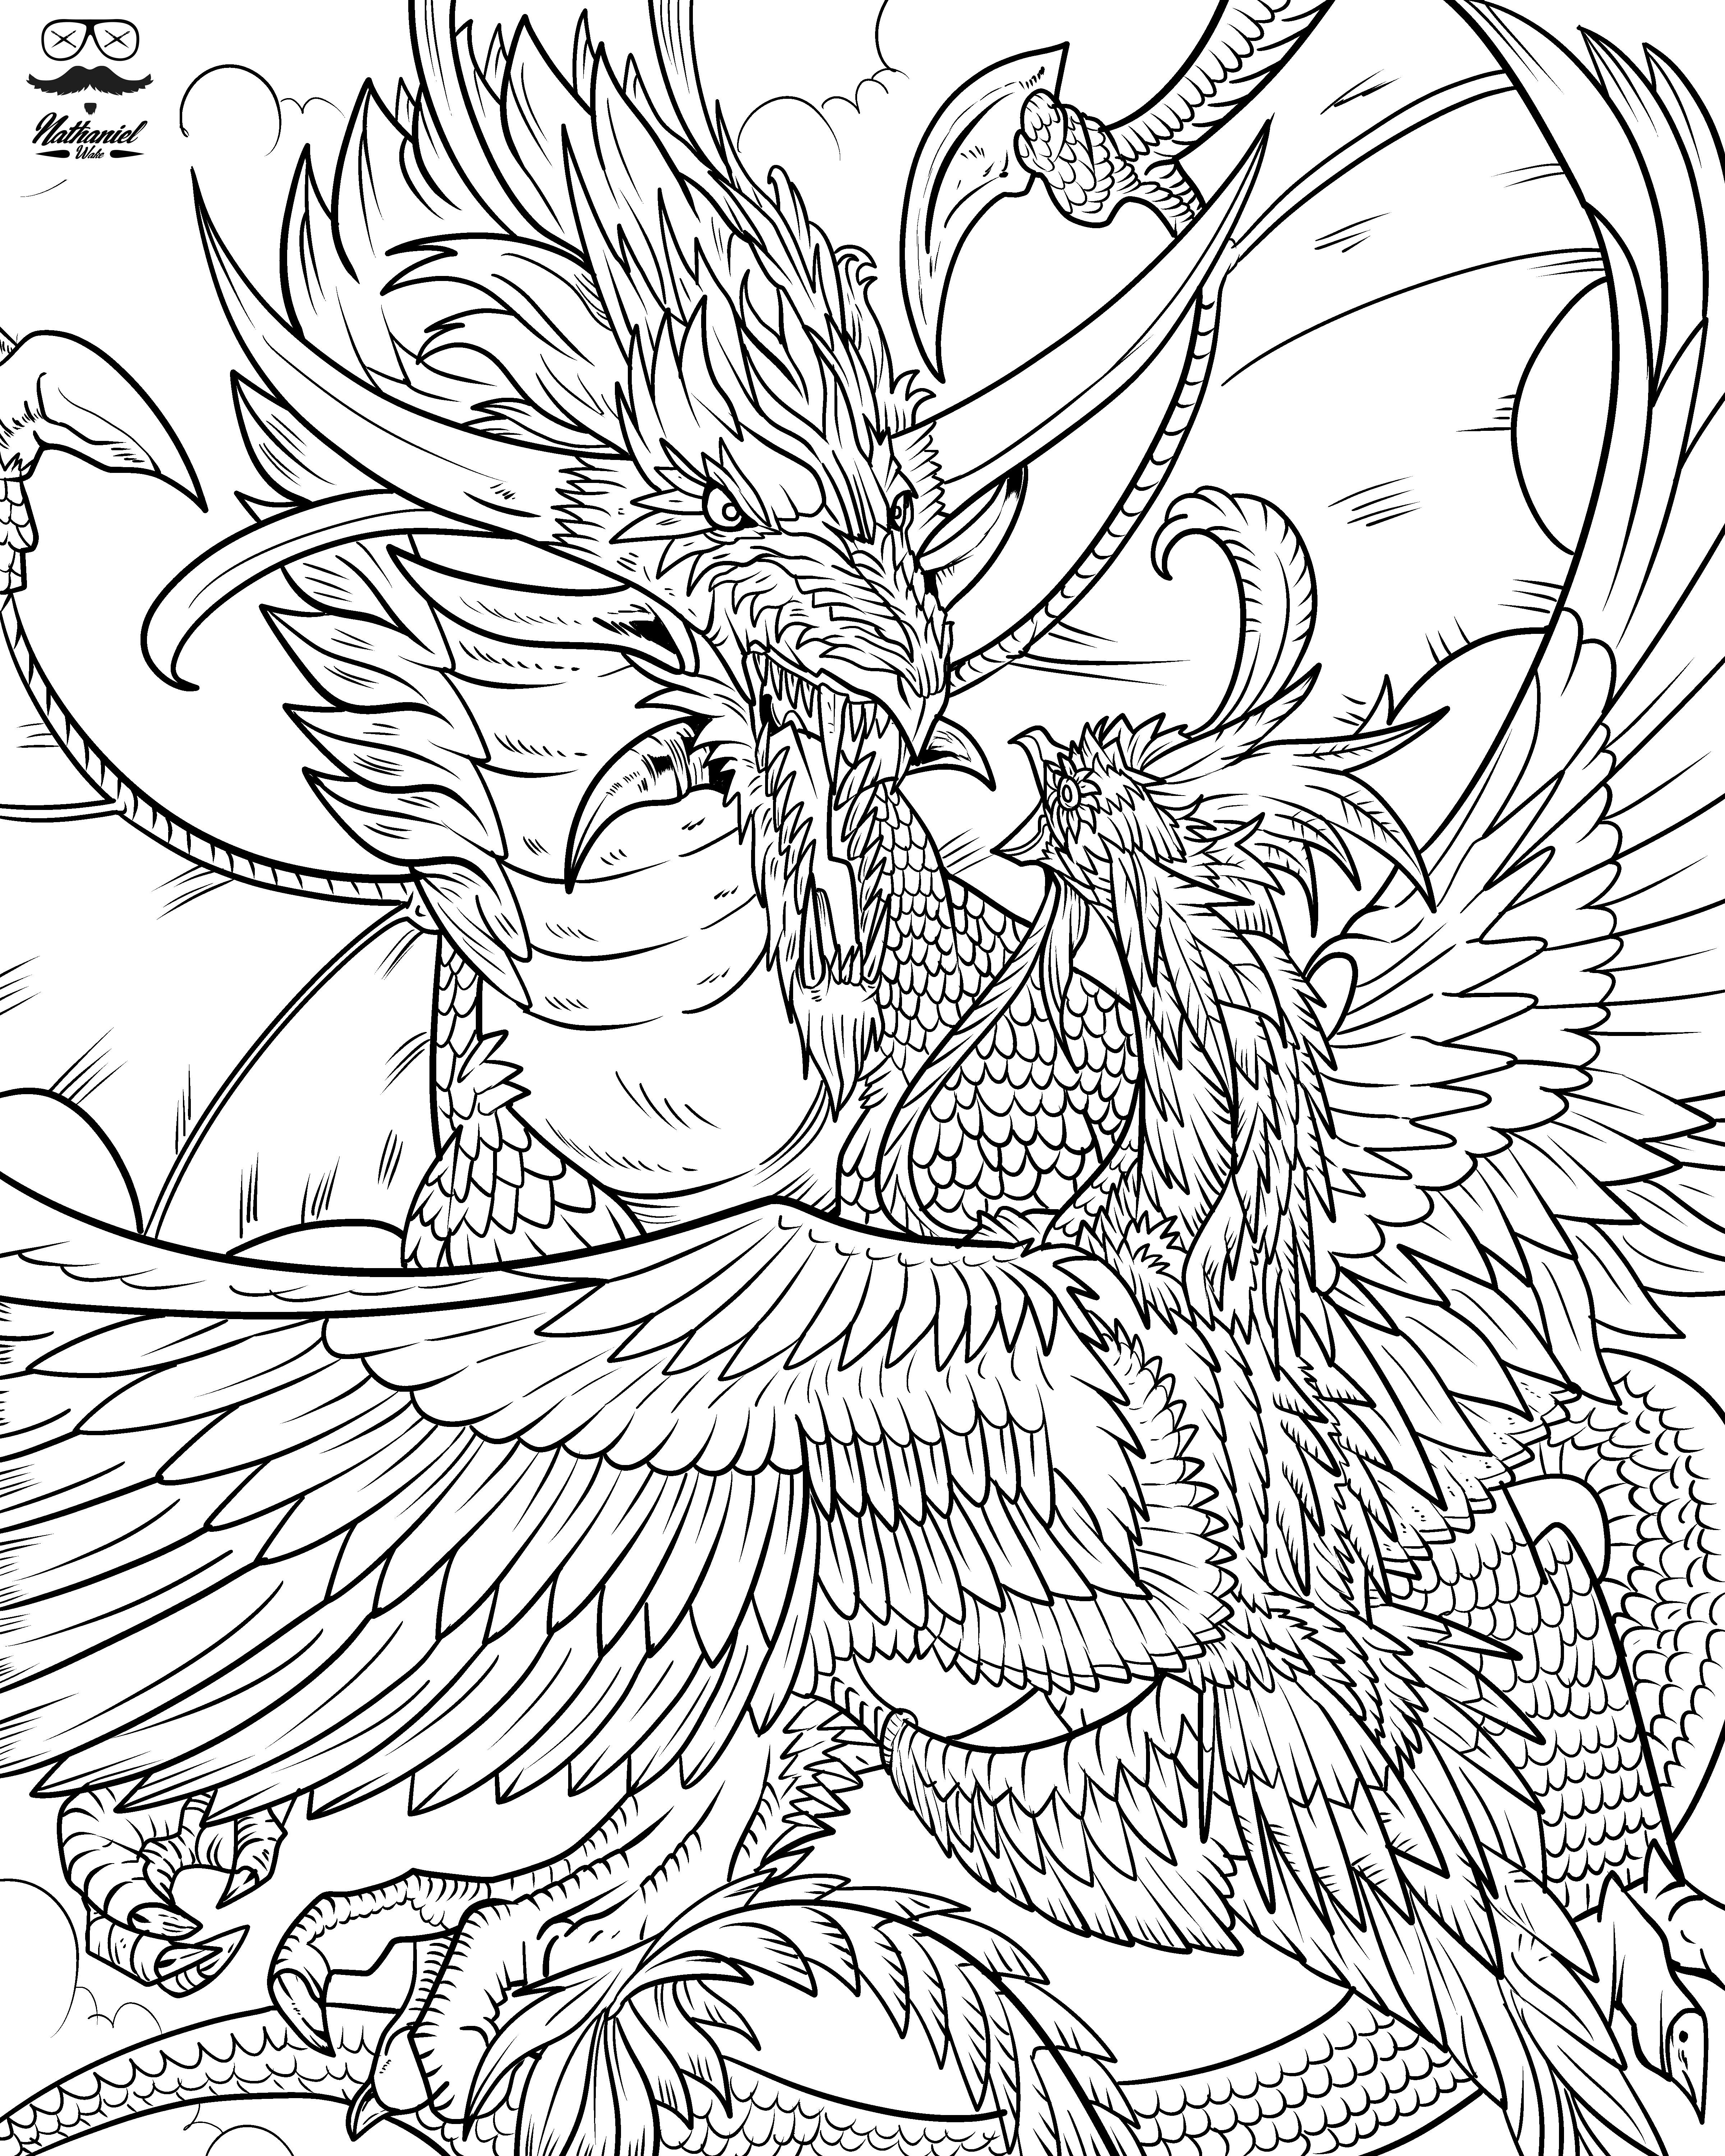 - From Nathaniel Wakes Wakes Adult Coloring Book, Dragon Life